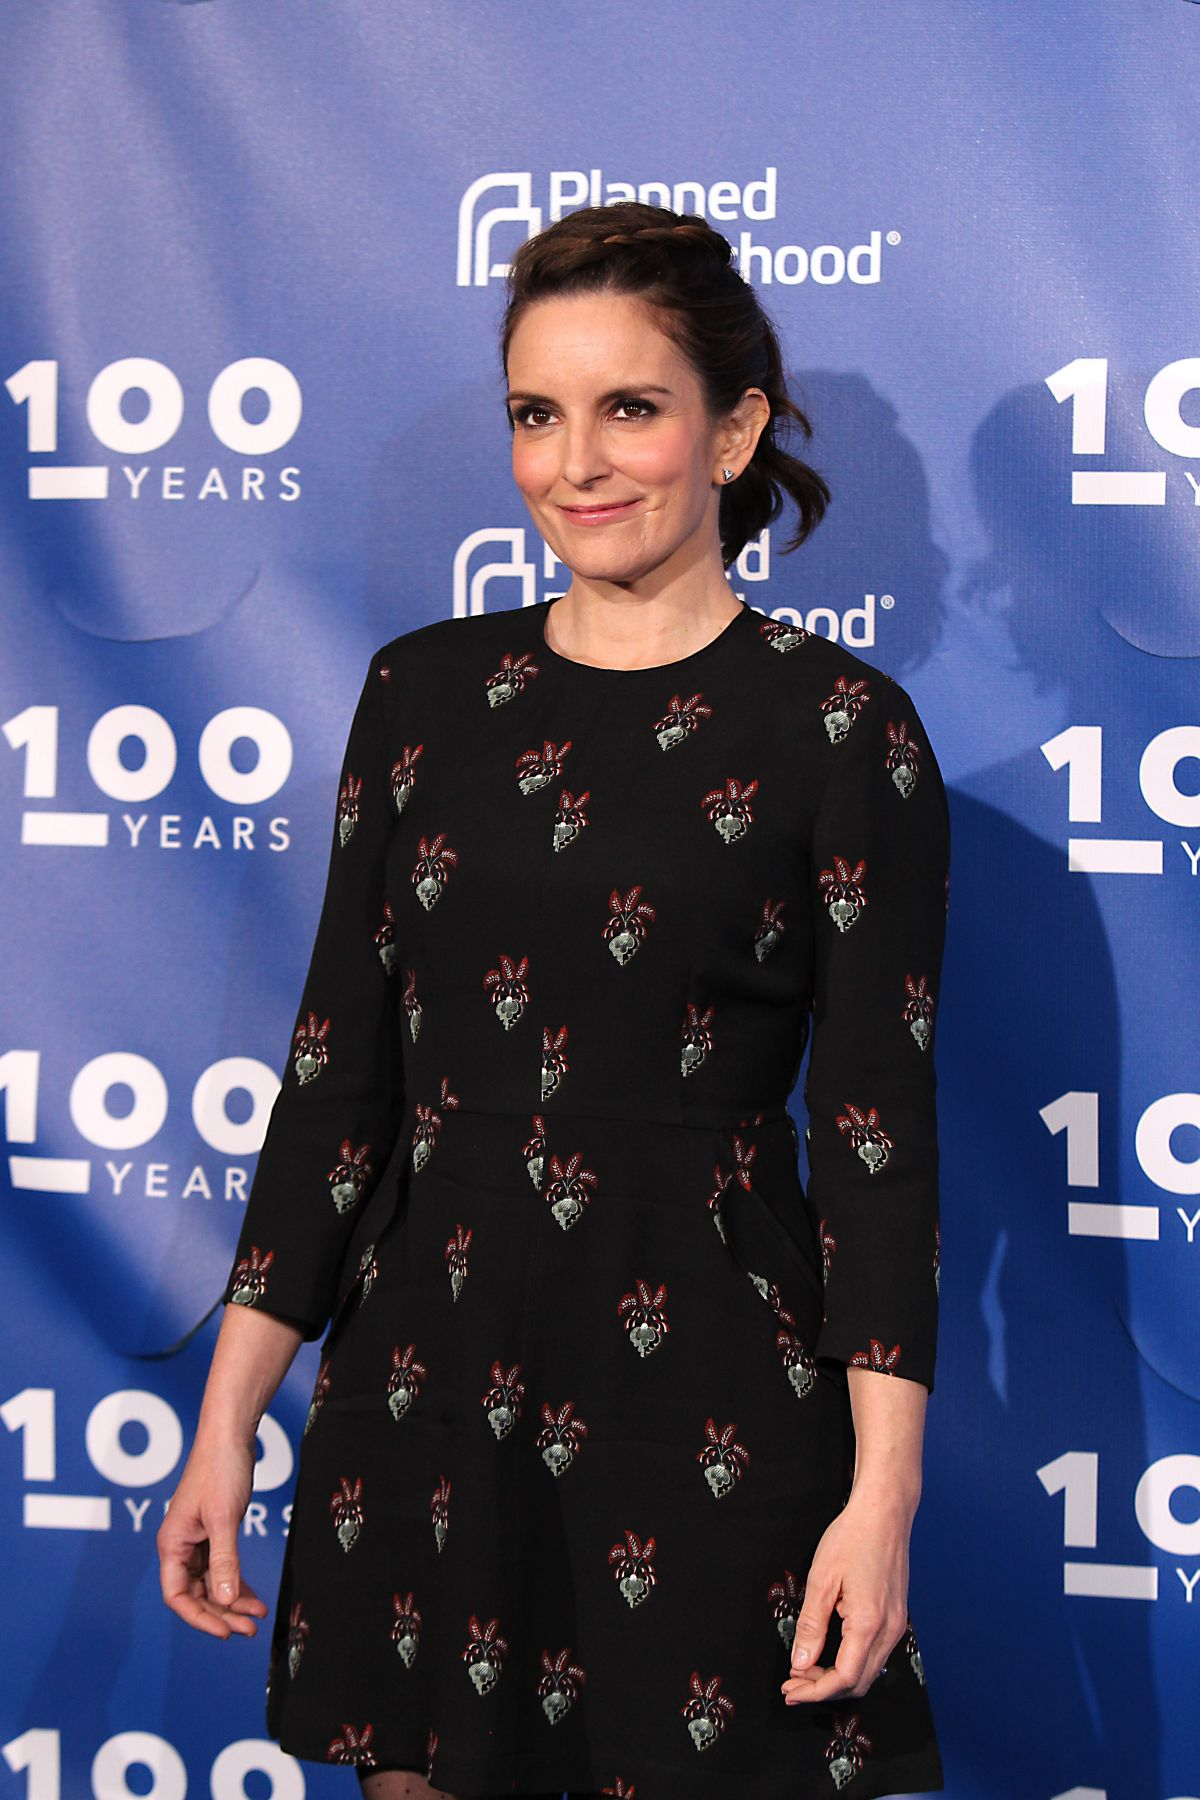 TINA FEY at Planned Parenthood 100th Anniversary Gala 05/02/2017